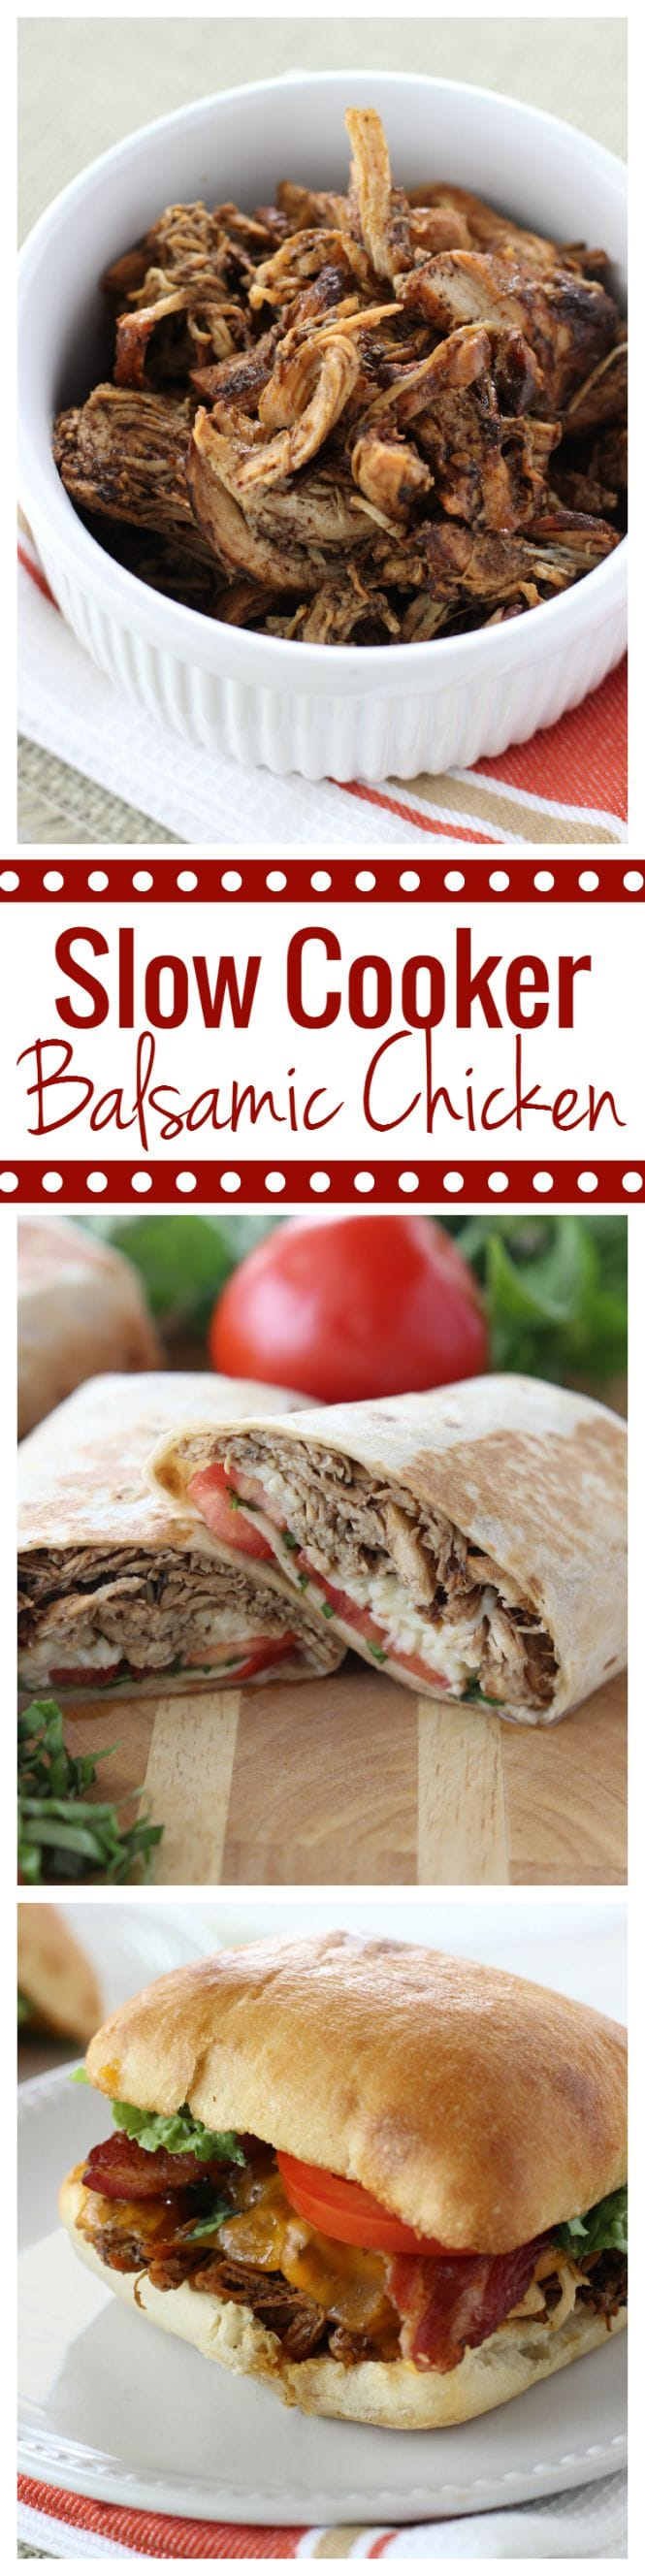 Slow Cooker Balsamic Chicken - Perfect for wraps and sandwiches! Great recipe for busy weeknights!